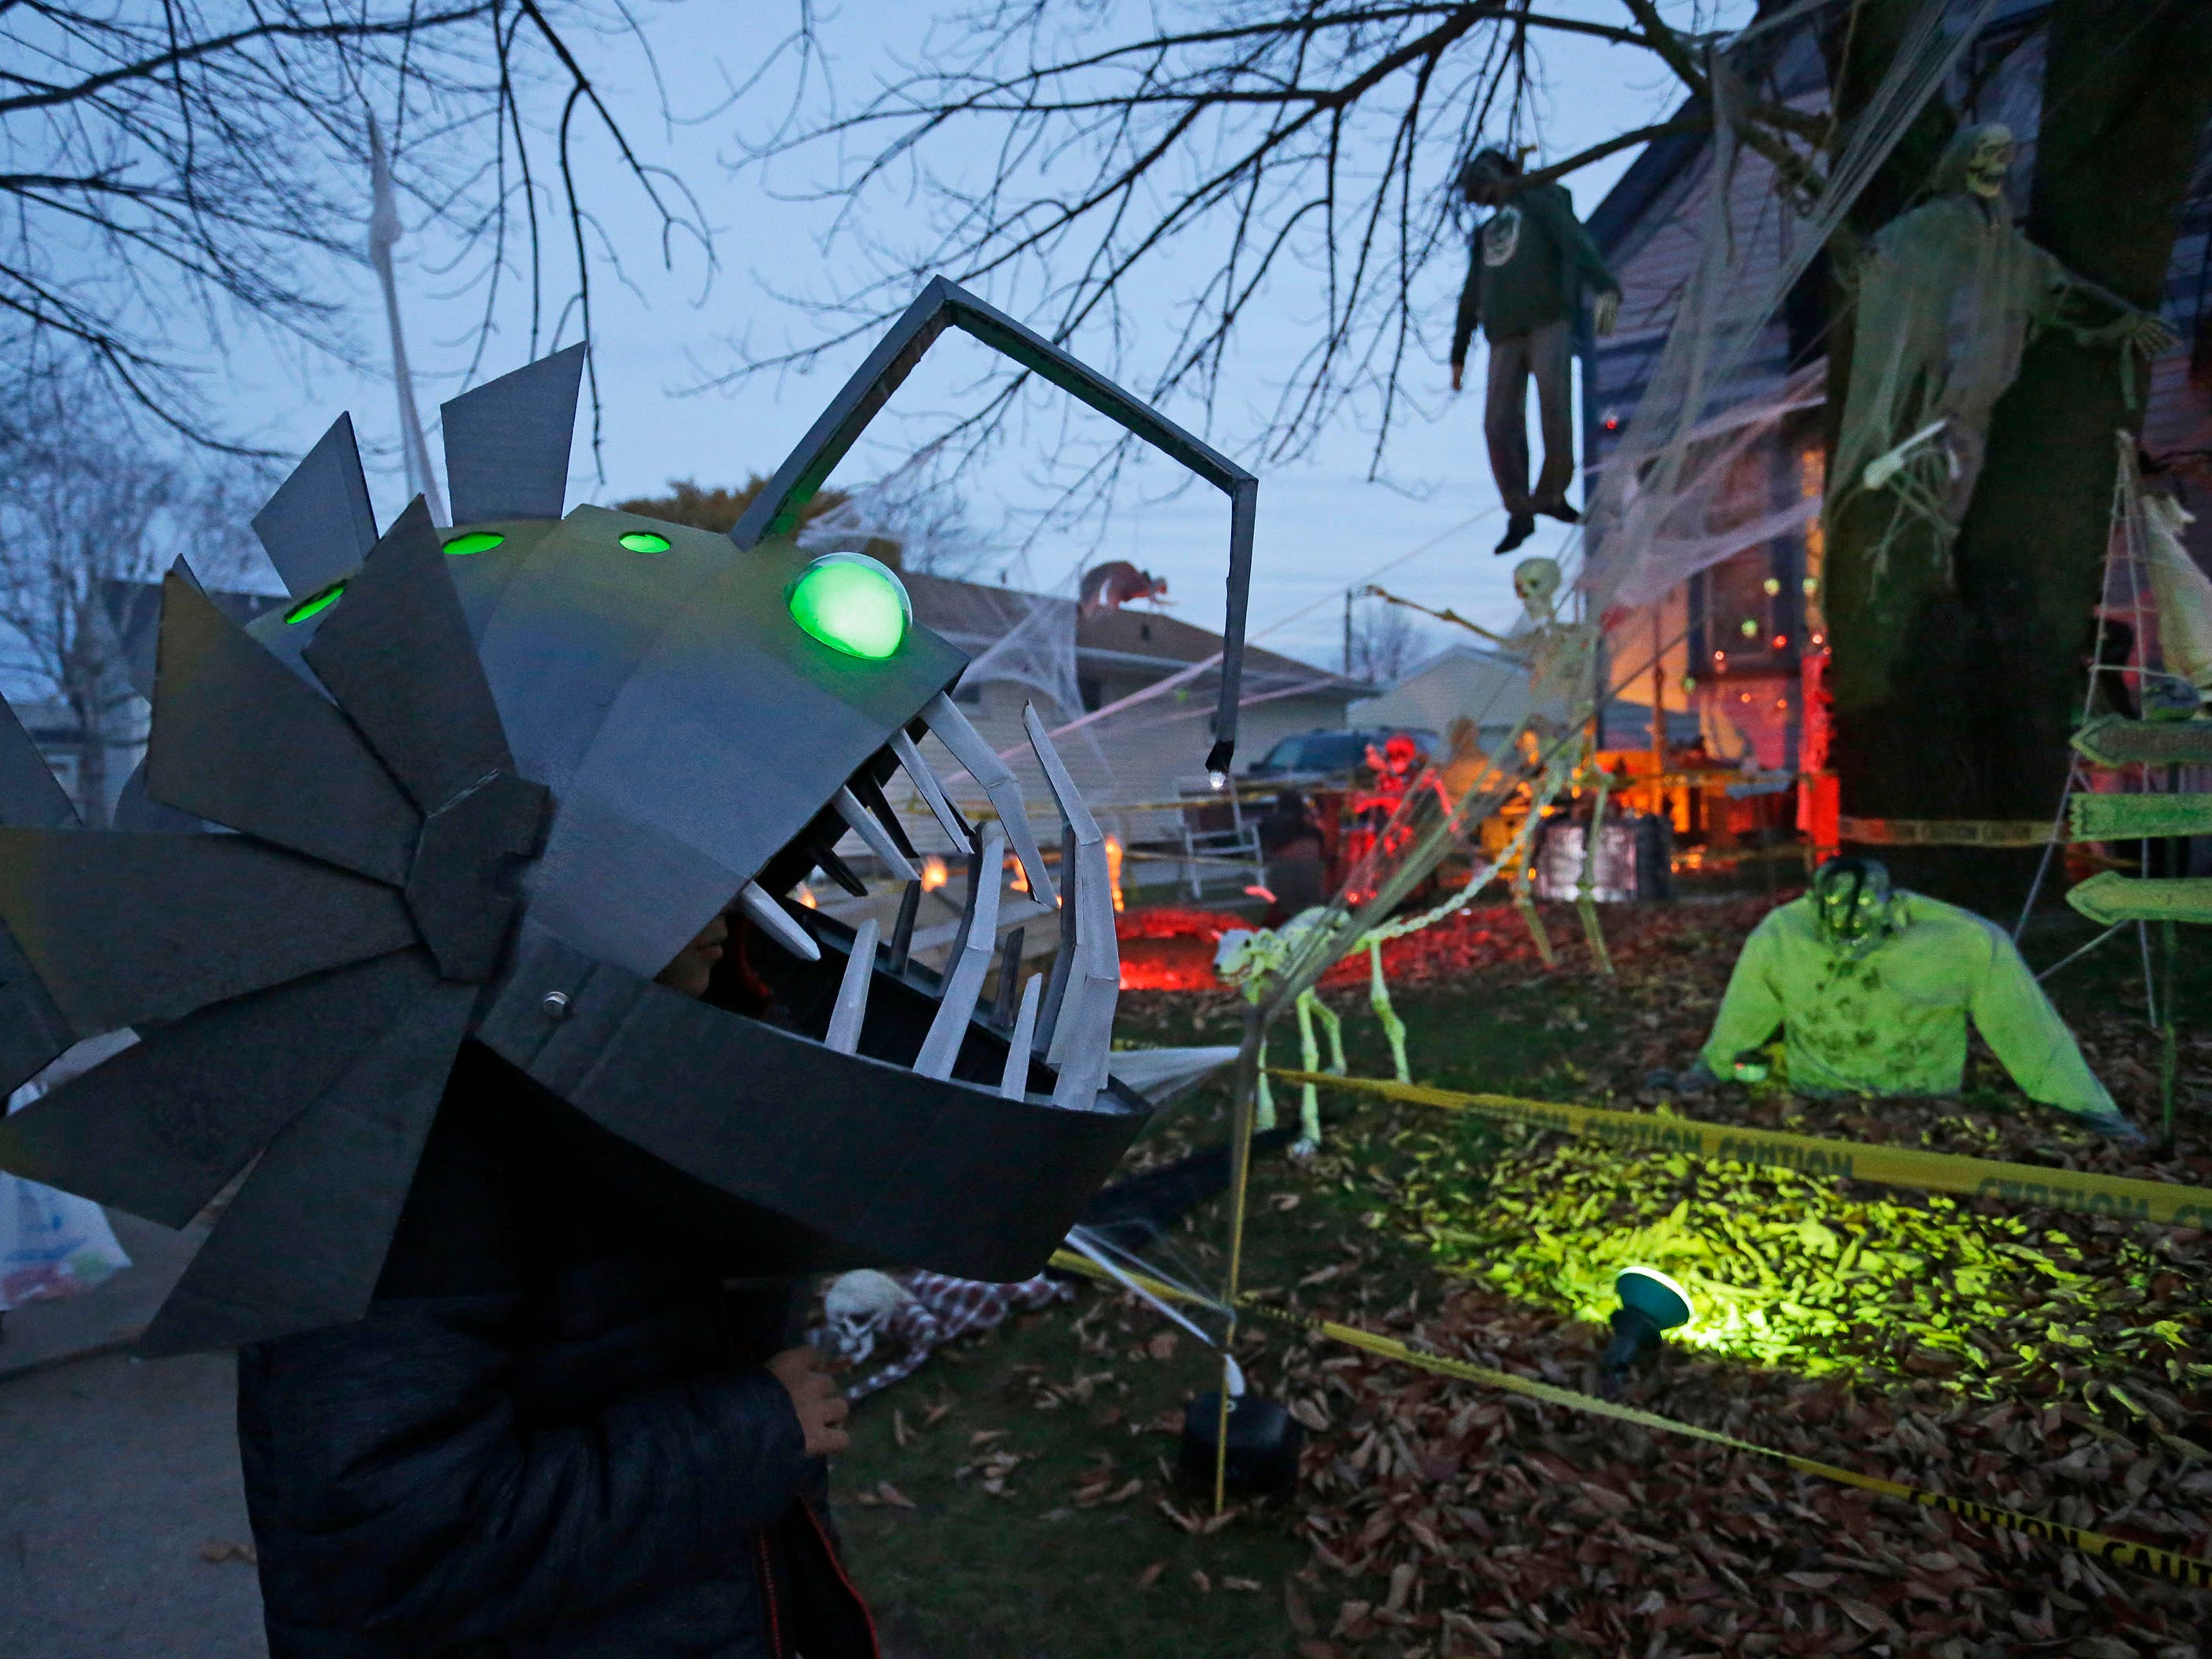 Wyatt Letourneau, 9, of Sheboygan, left, who is dressed as a Lantern Fish, is ready to scare during Trick or Treat, Wednesday, October 31, 2018, in Sheboygan, Wis.